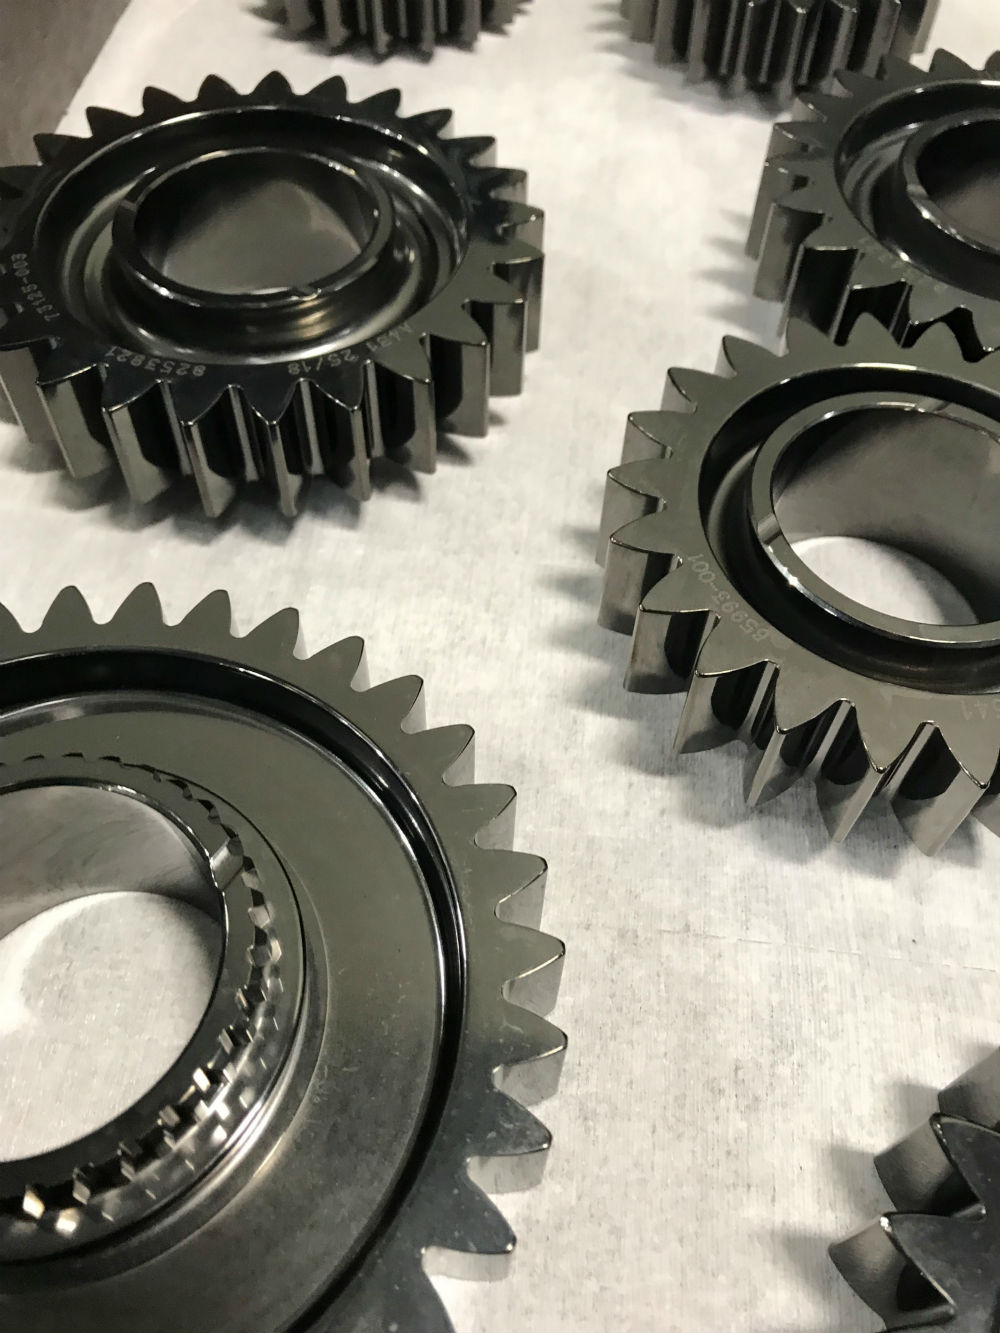 Pictures of coated mechanical gears